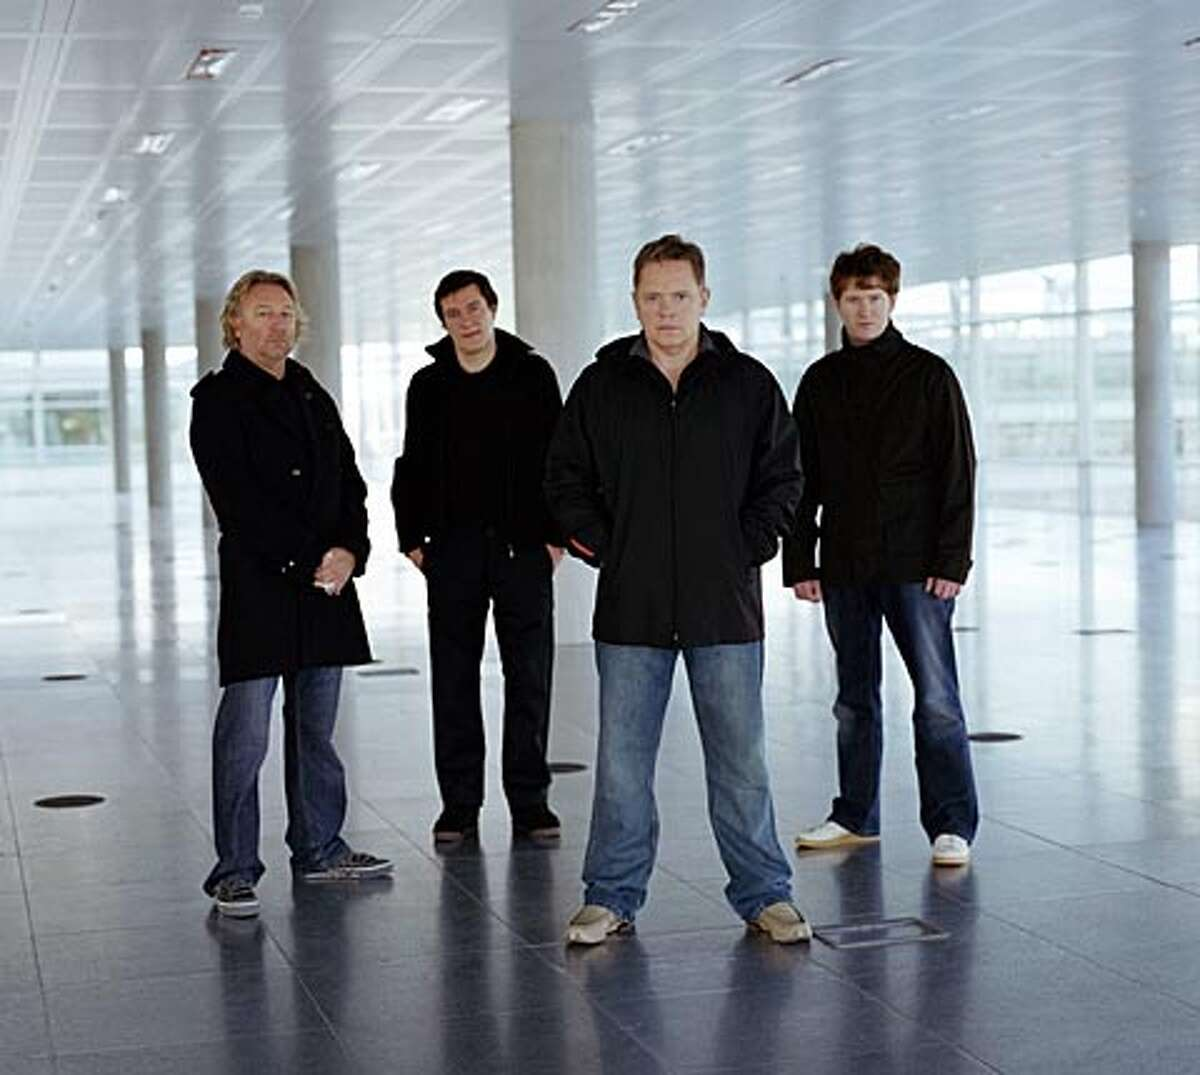 The band New Order.